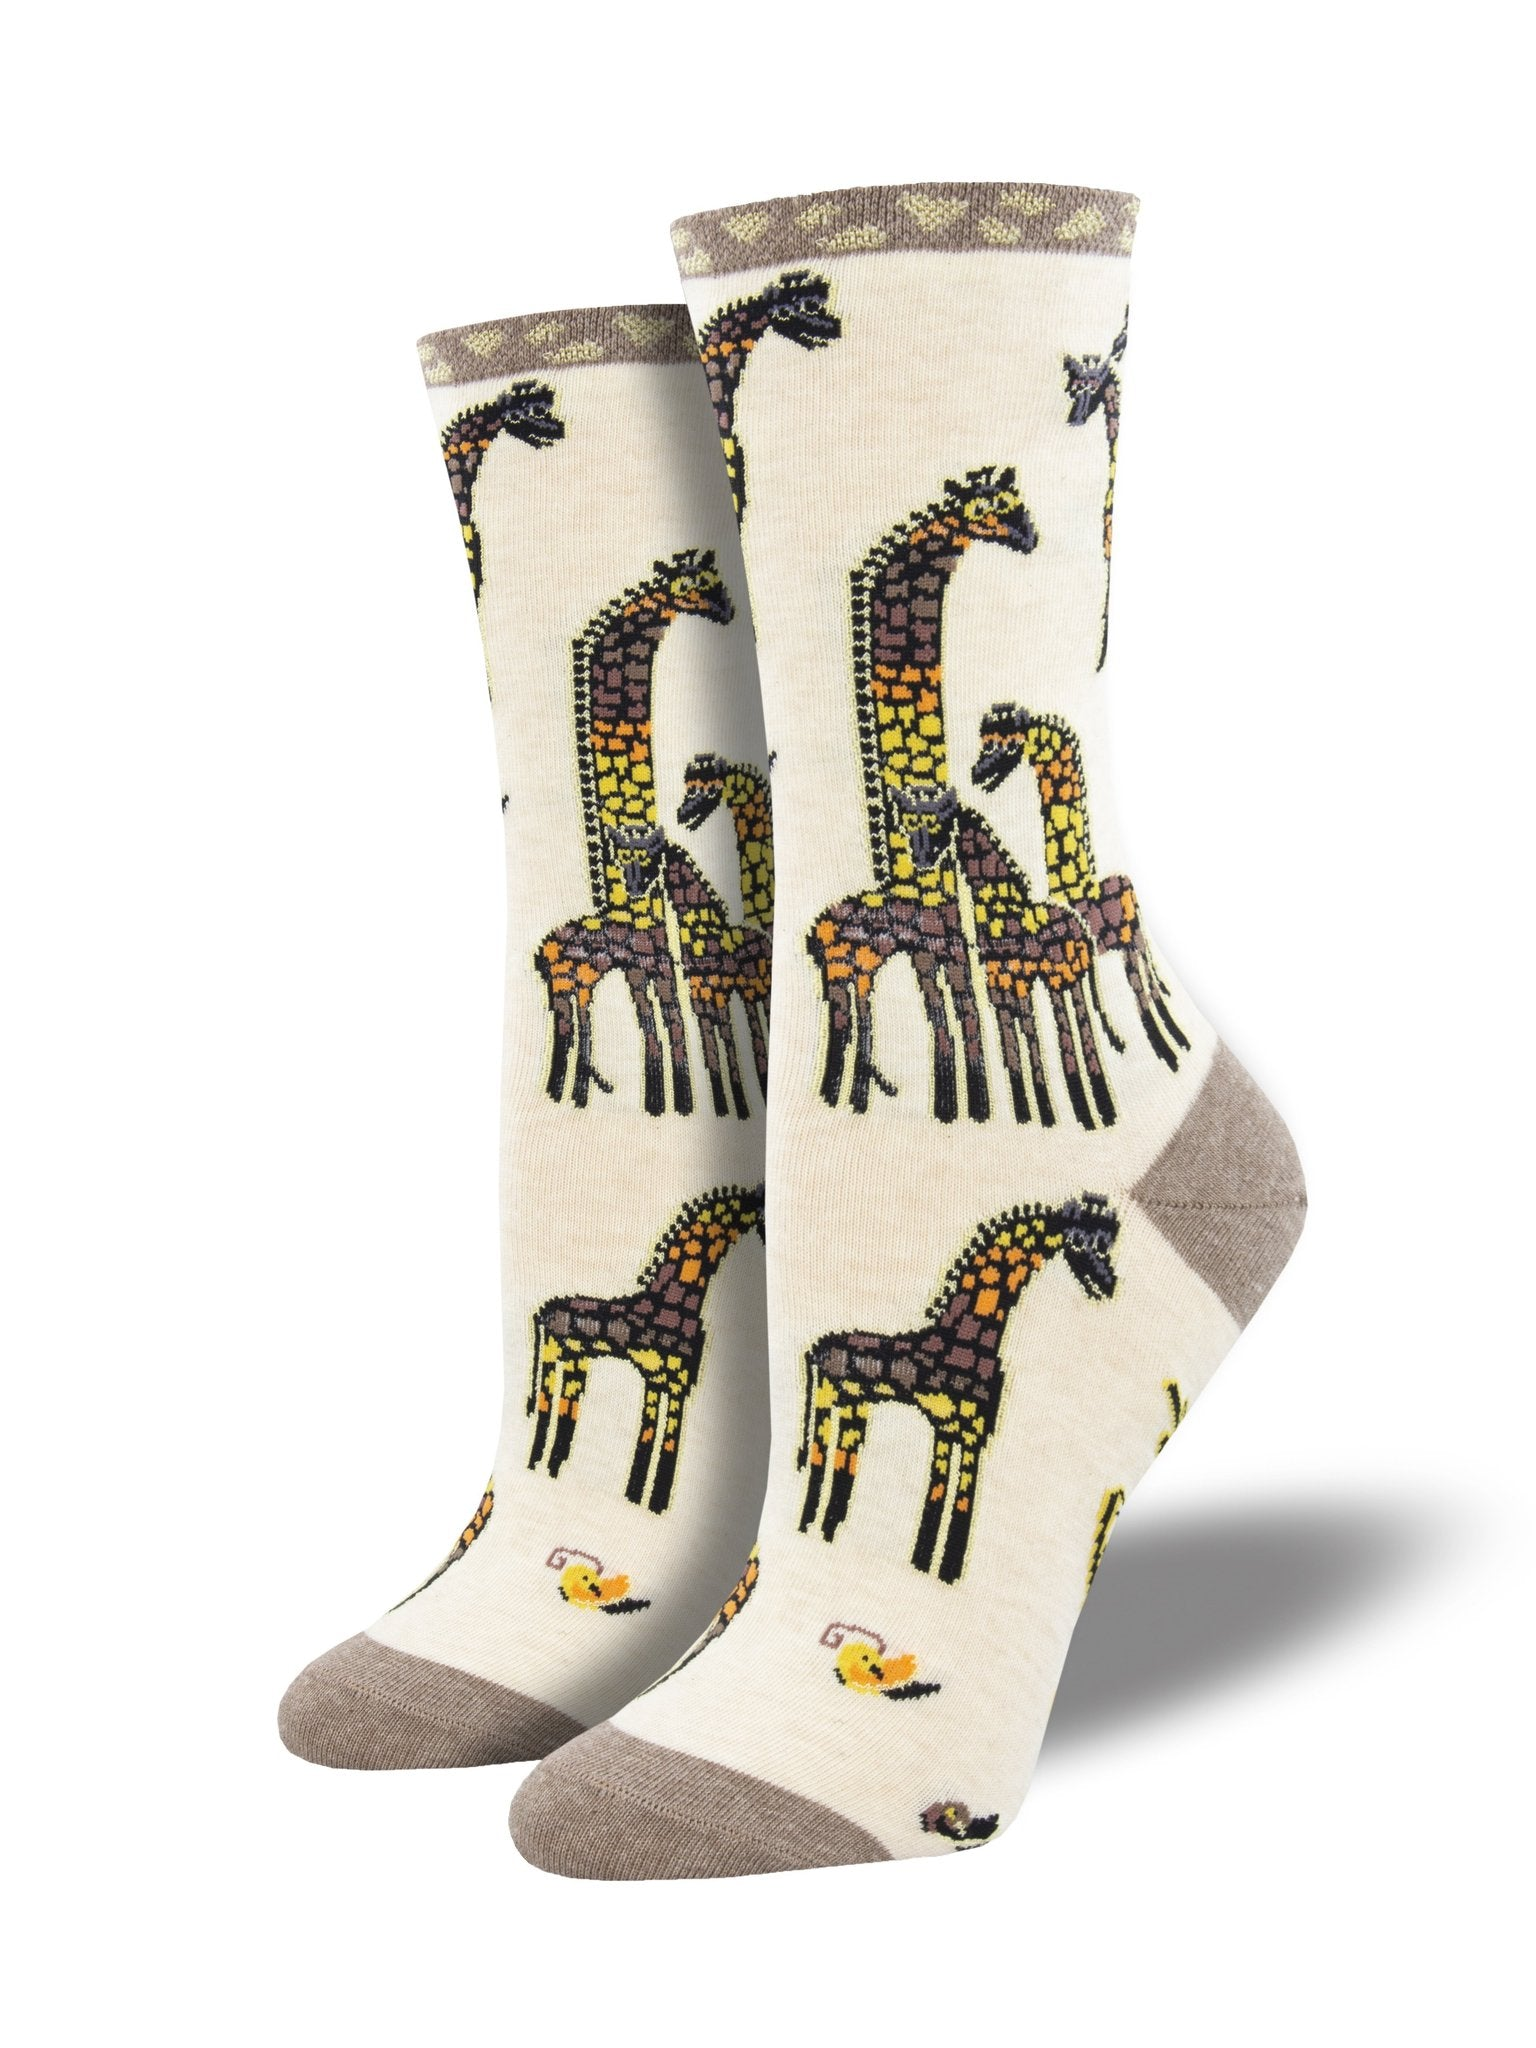 Women's Laurel Burch Giraffe Family Crew